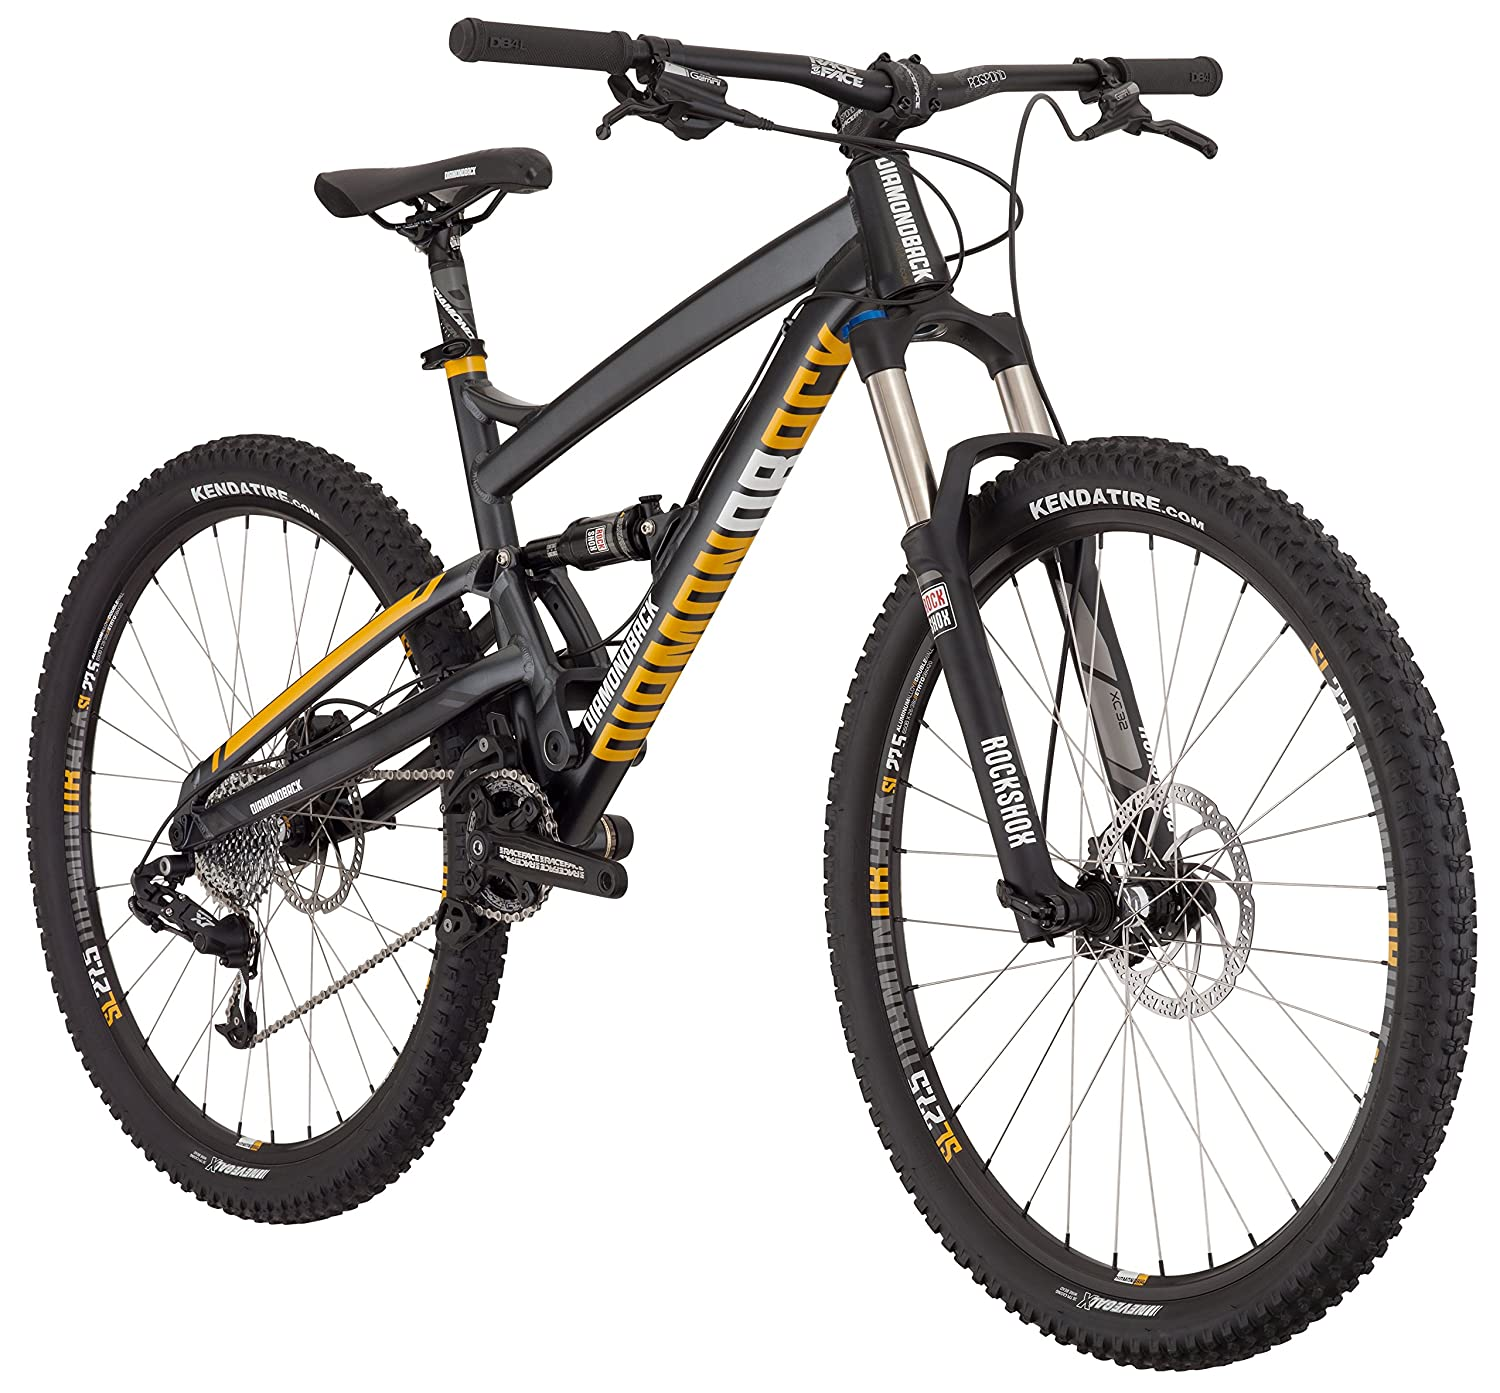 Best Full Suspension Mountain Bike Under 2000 Dollars